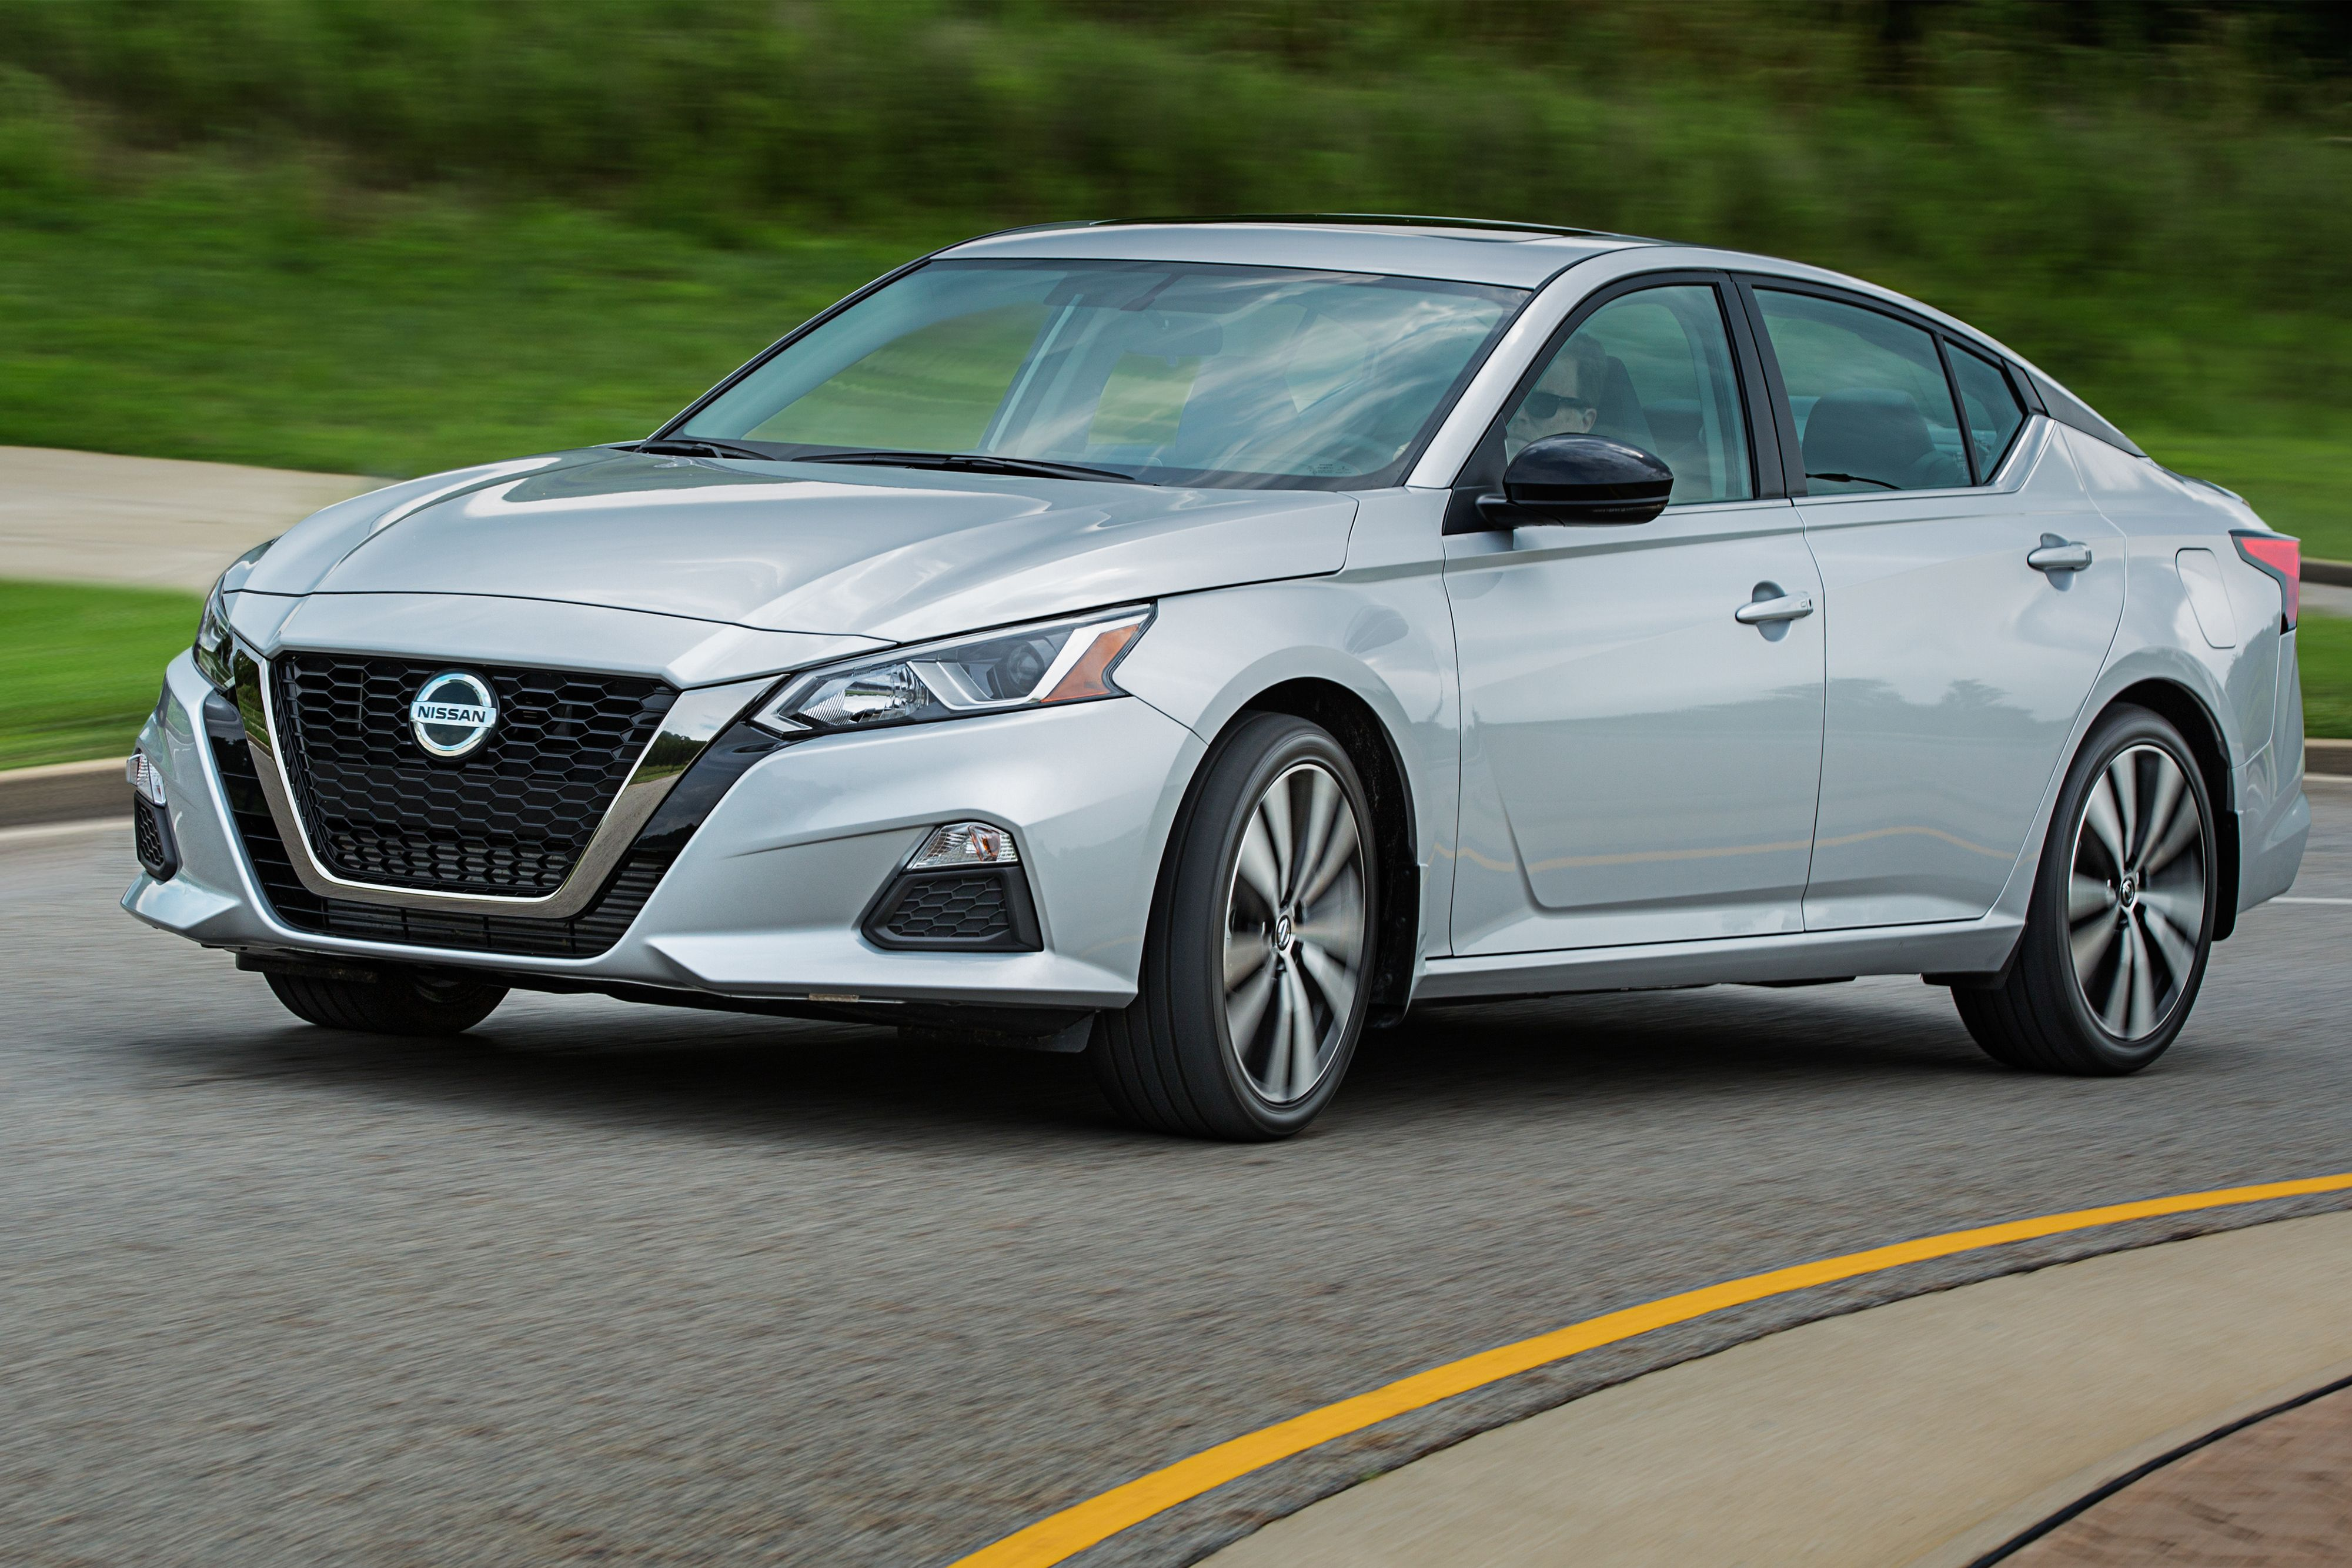 2020 Nissan Altima Gets Small Price Bump Expanded Safety Tech Nissan Altima Nissan Maxima Altima